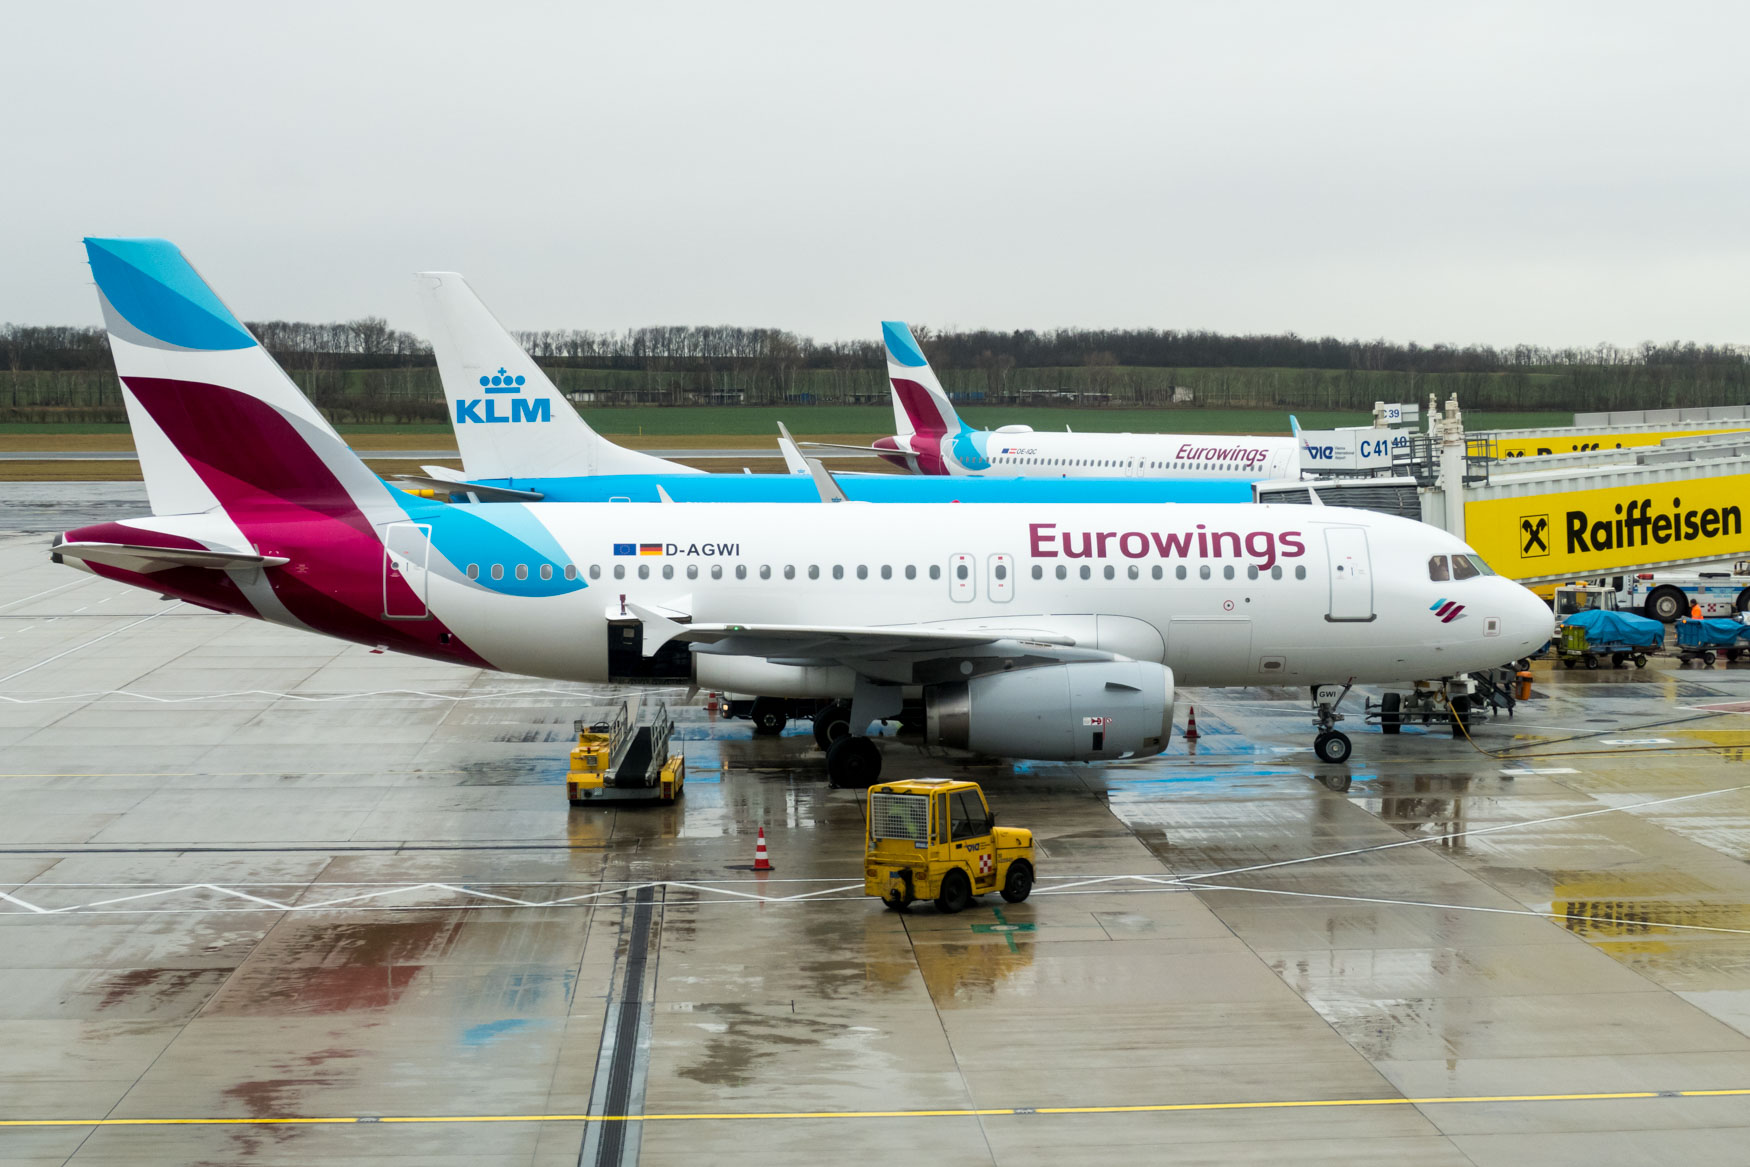 KLM 737 and Eurowings